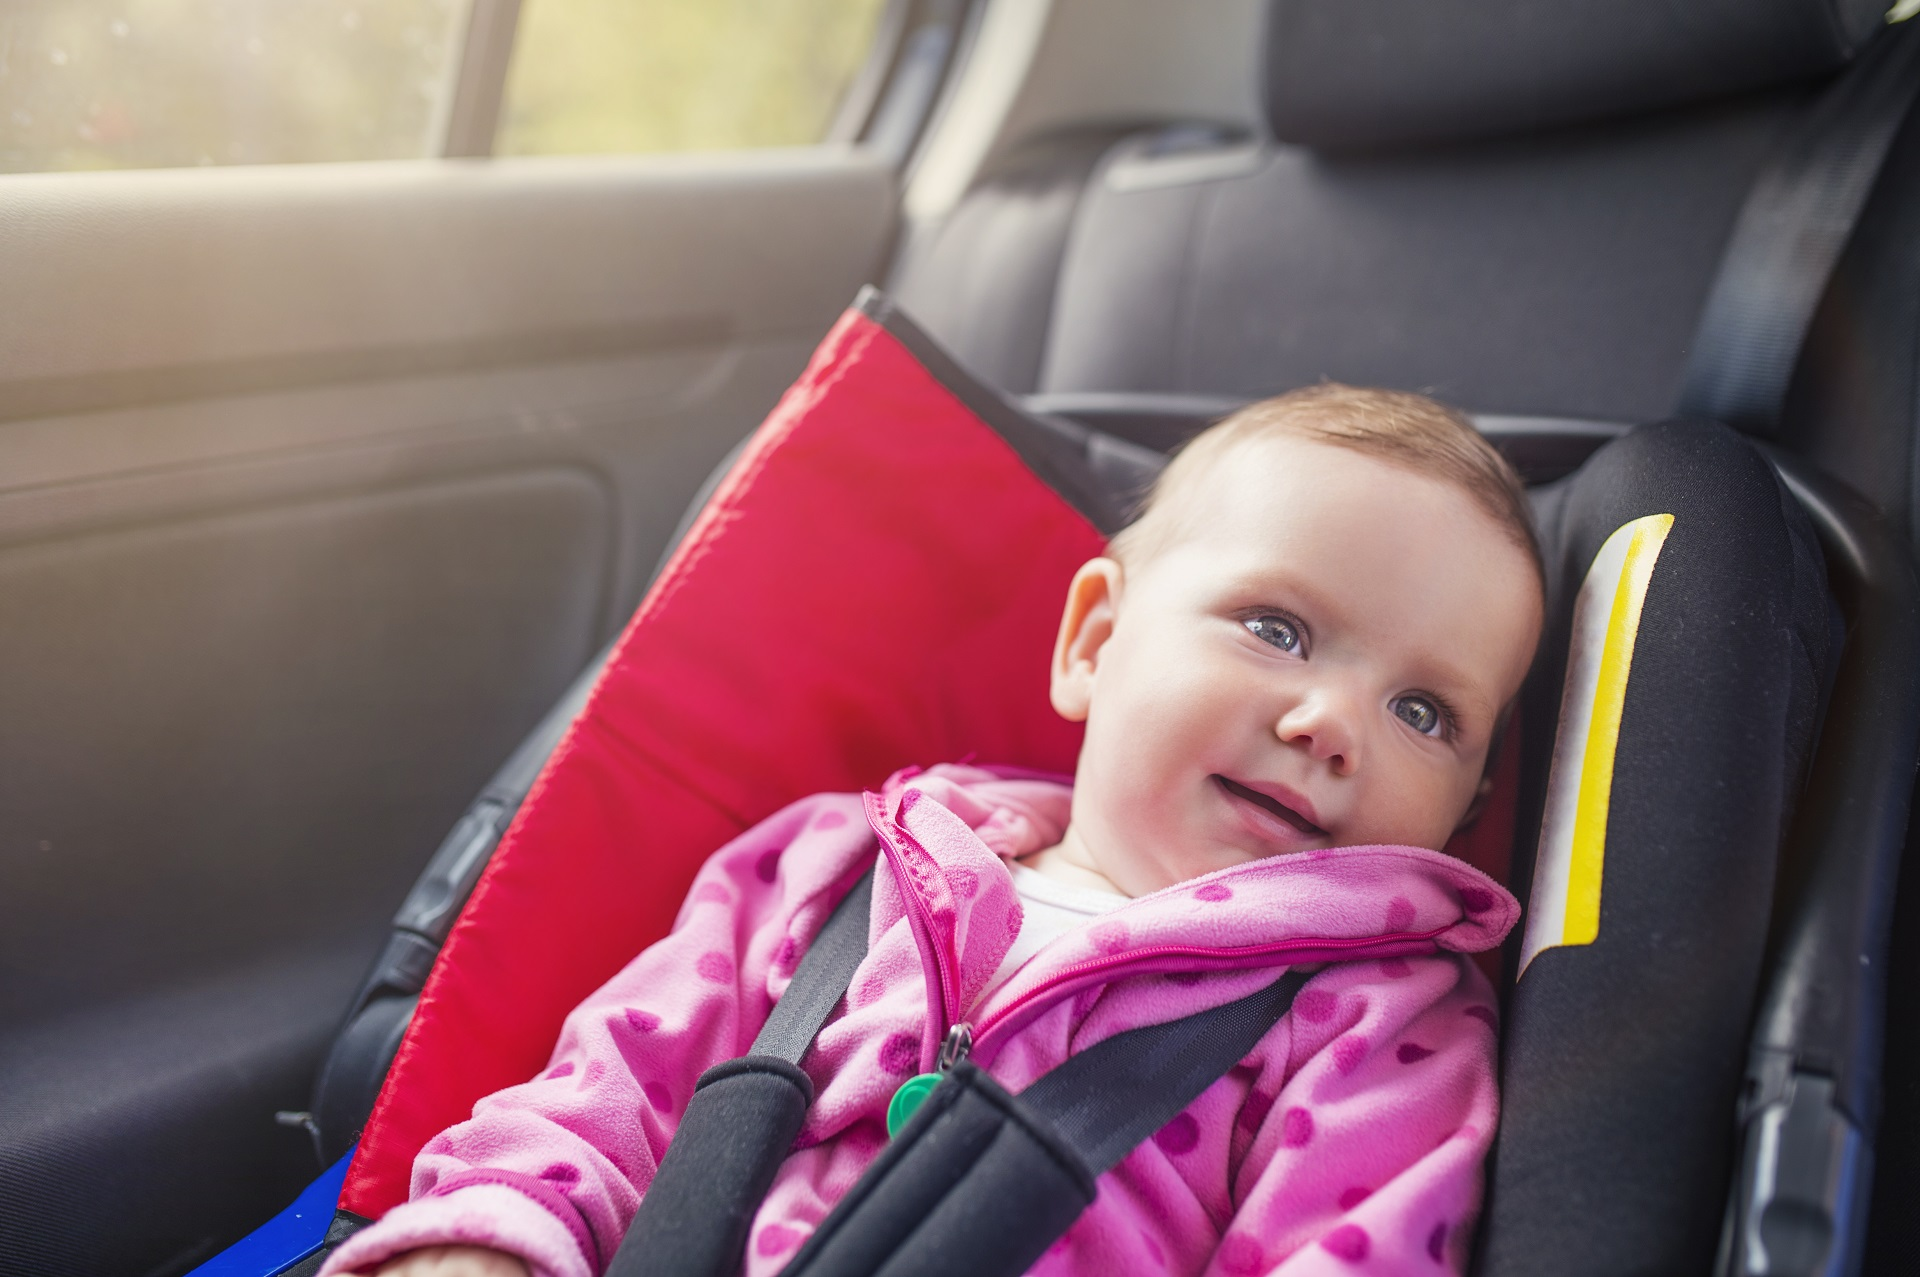 A young child in a baby seat in the back seat of a car - if you ask is it illegal to smoke in your car in australia, you should remember it's very illegal to smoke in a car when there are children